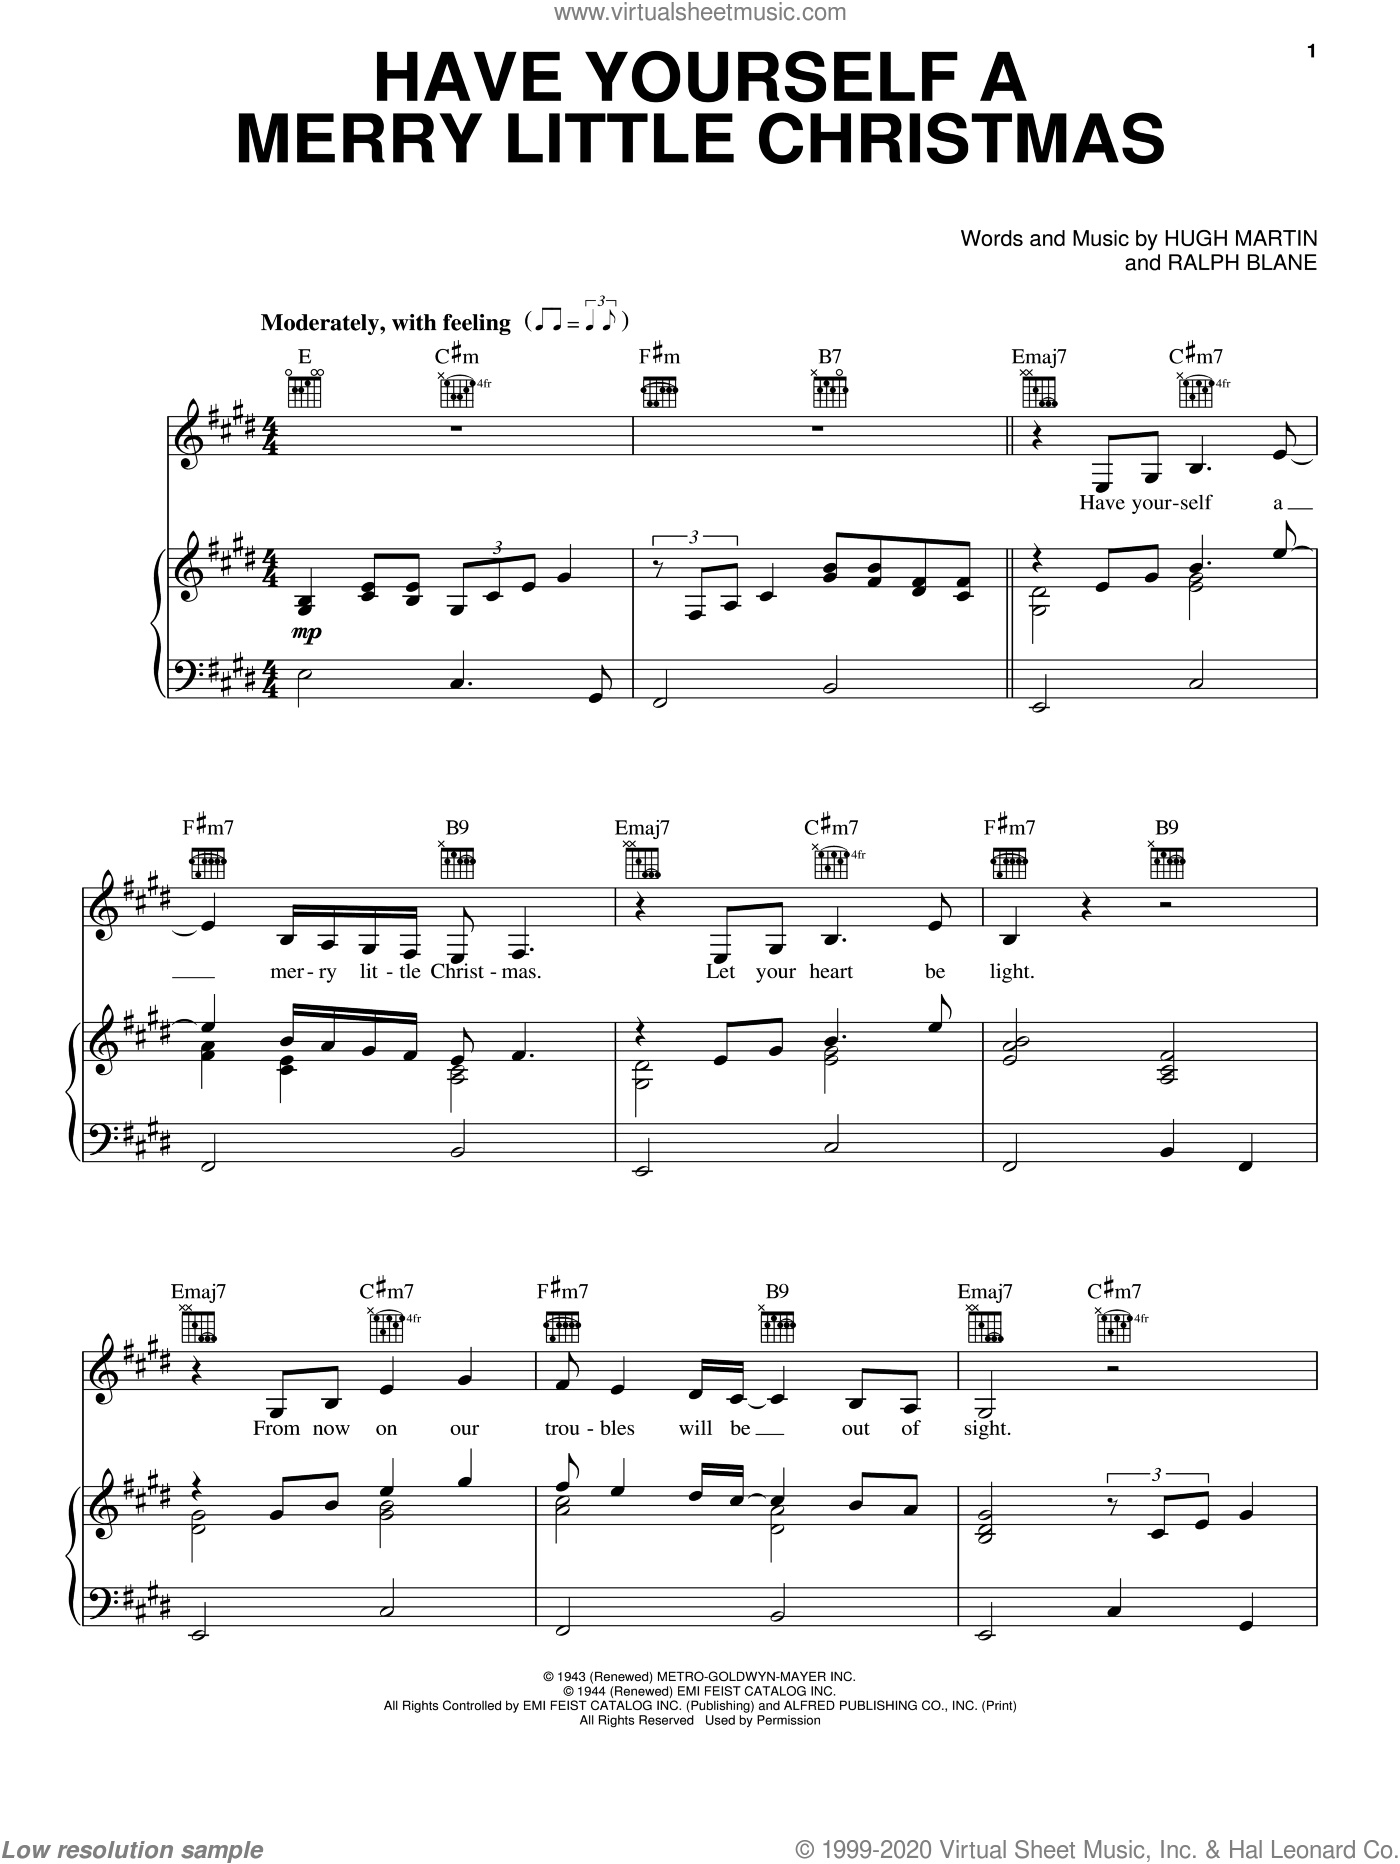 Have Yourself A Merry Little Christmas sheet music for voice, piano or guitar by Melissa Etheridge, Carpenters, Hugh Martin and Ralph Blane, intermediate